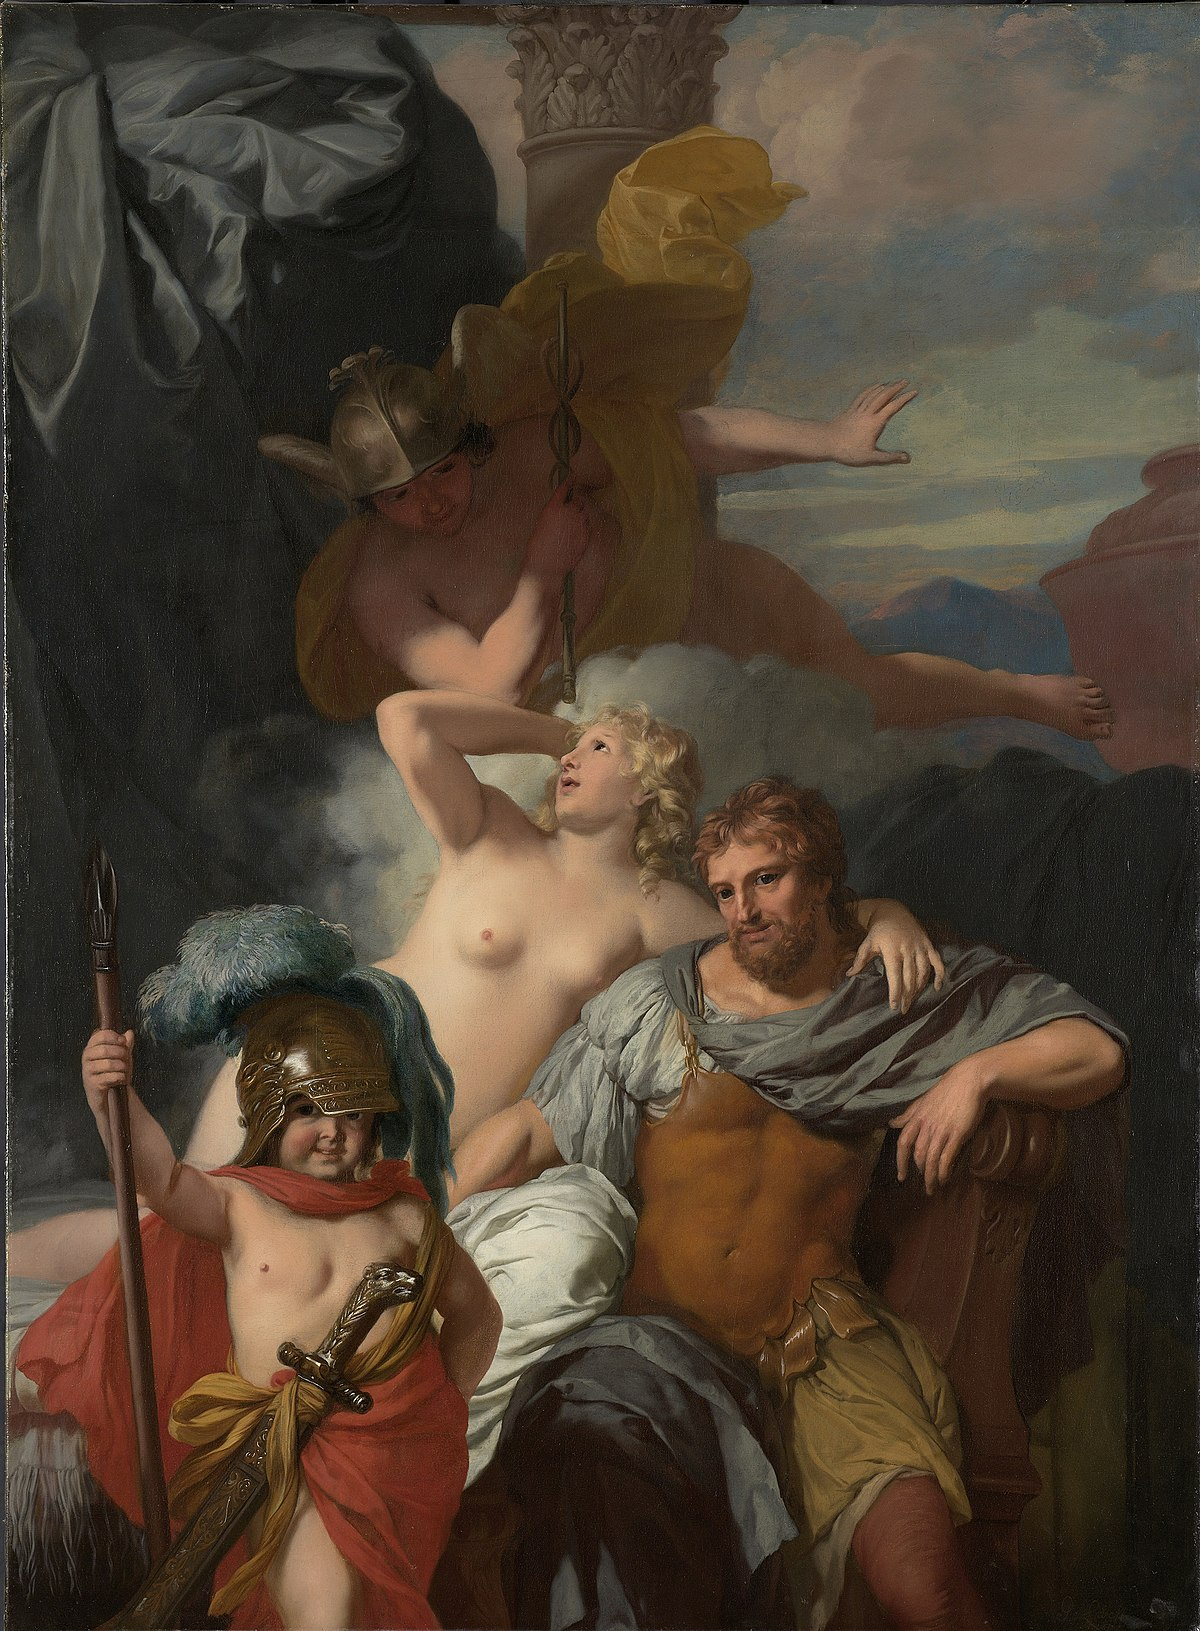 odysseus identity Odysseus, she hears from eurykleia how the old woman discovered odysseus's identity, and odysseus dramatically reveals himself to her with the help of a goddess ( od 23156-163), and penelope's response is to trick him , forcing him to either reveal himself as a fraud or offer factual.